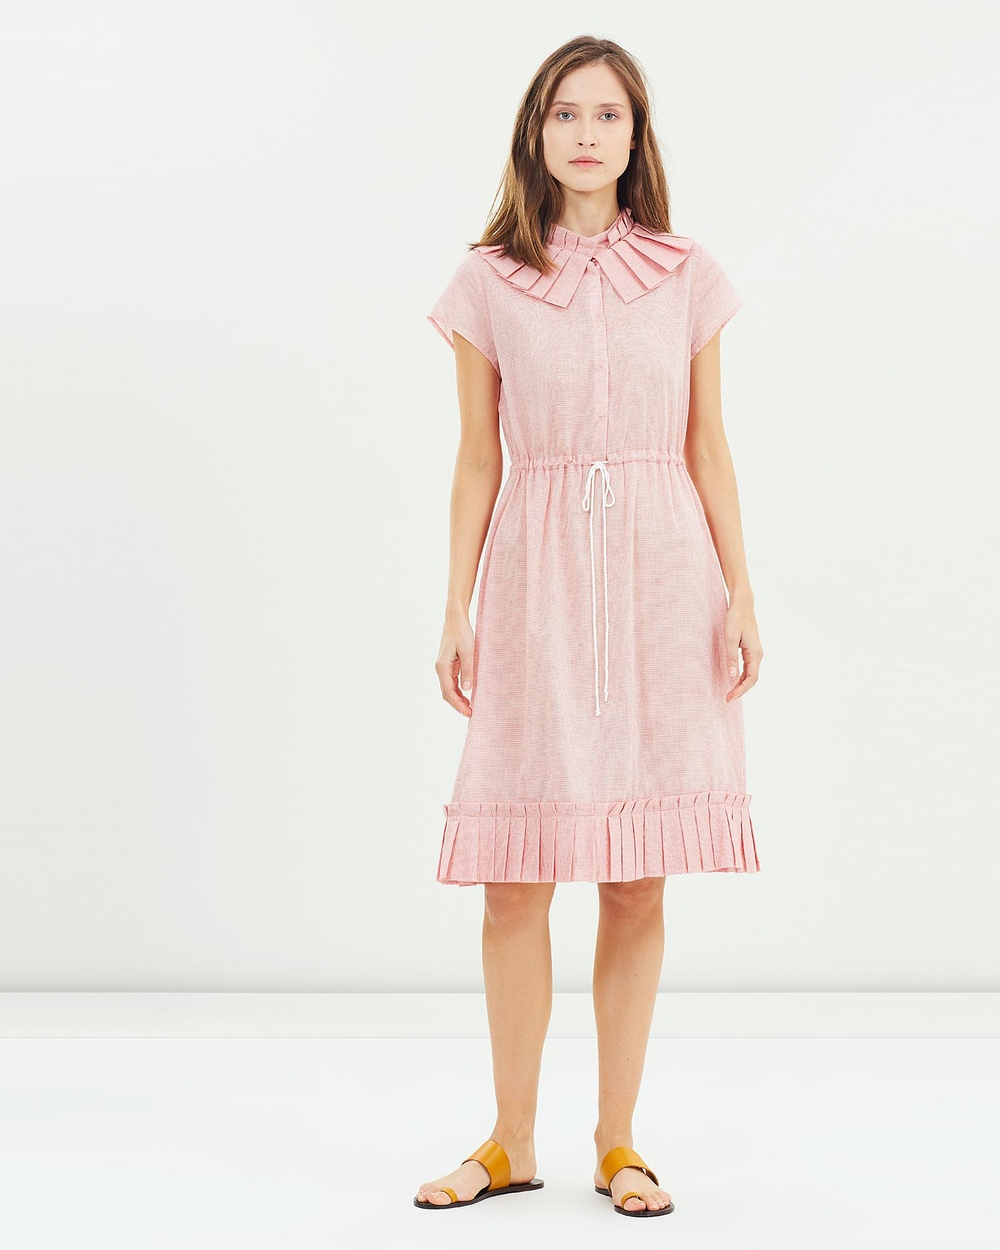 Morrison Arlette Dress Dresses Stripe Arlette Dress